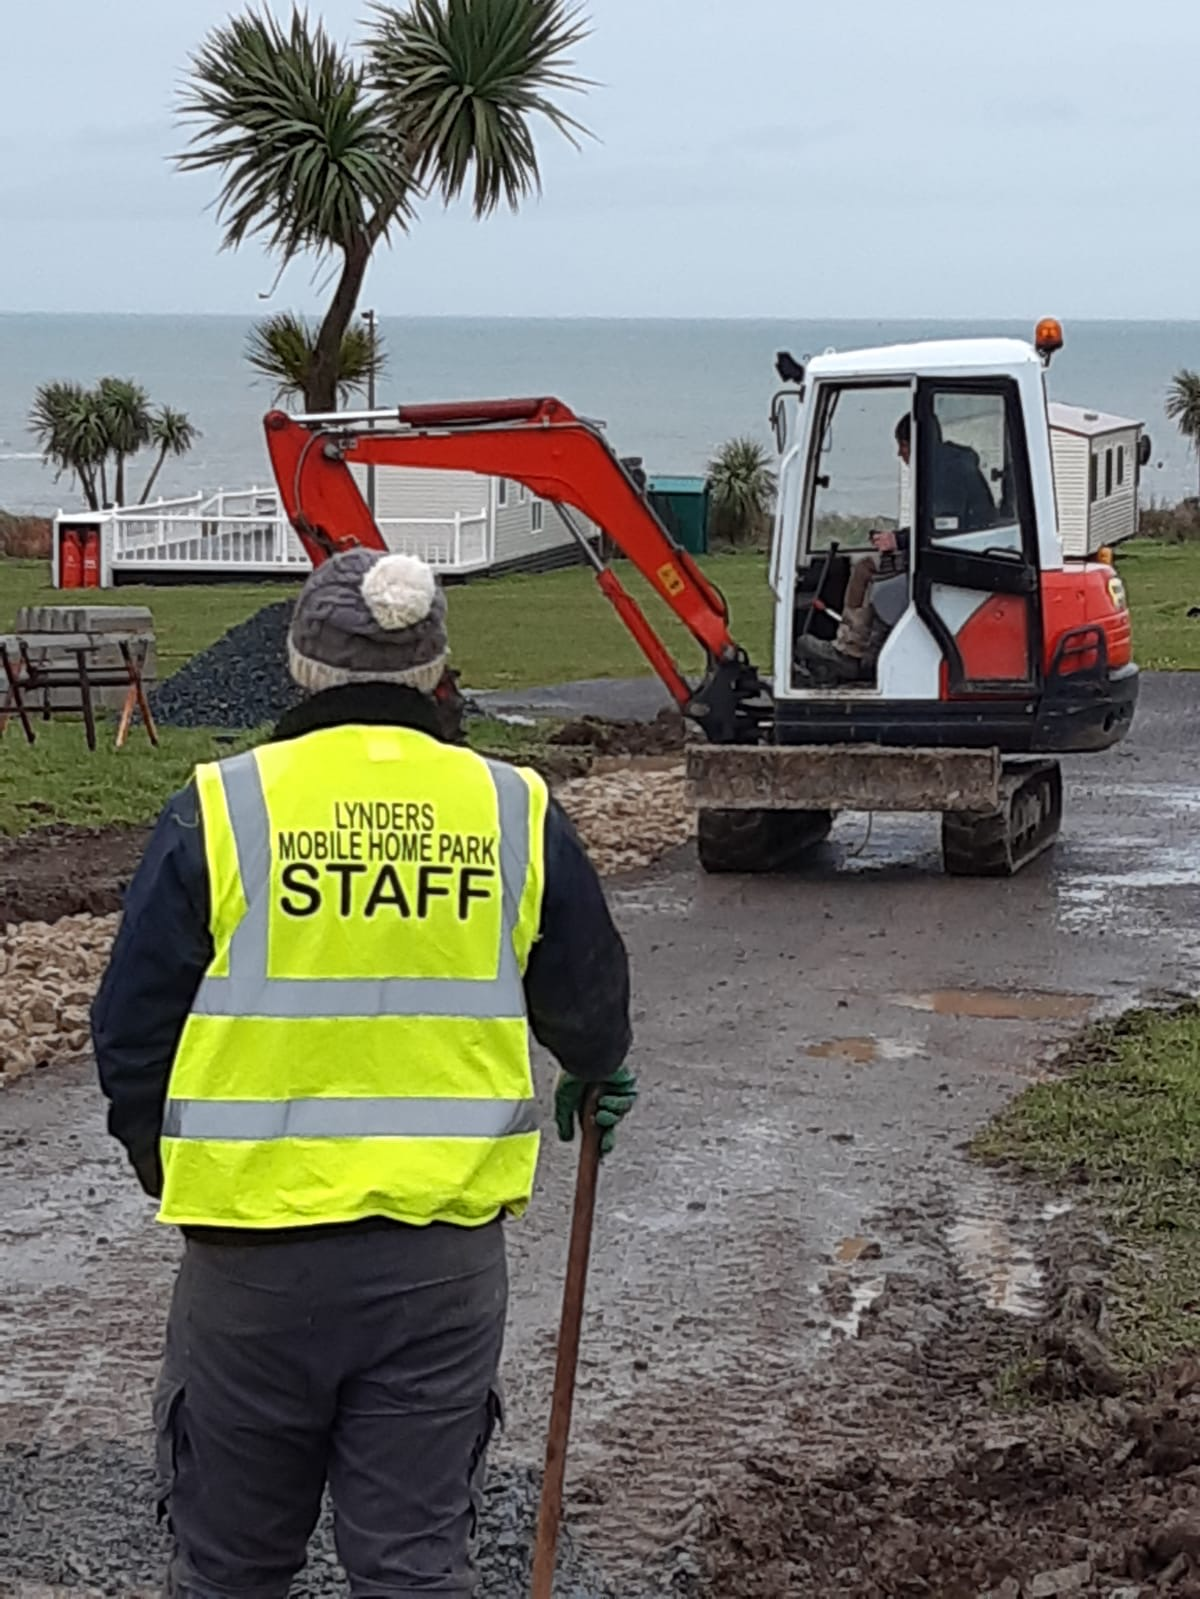 Lynders Mobile Home Park, New Entrance 2021 - Portrane, Donabate, North County Dublin